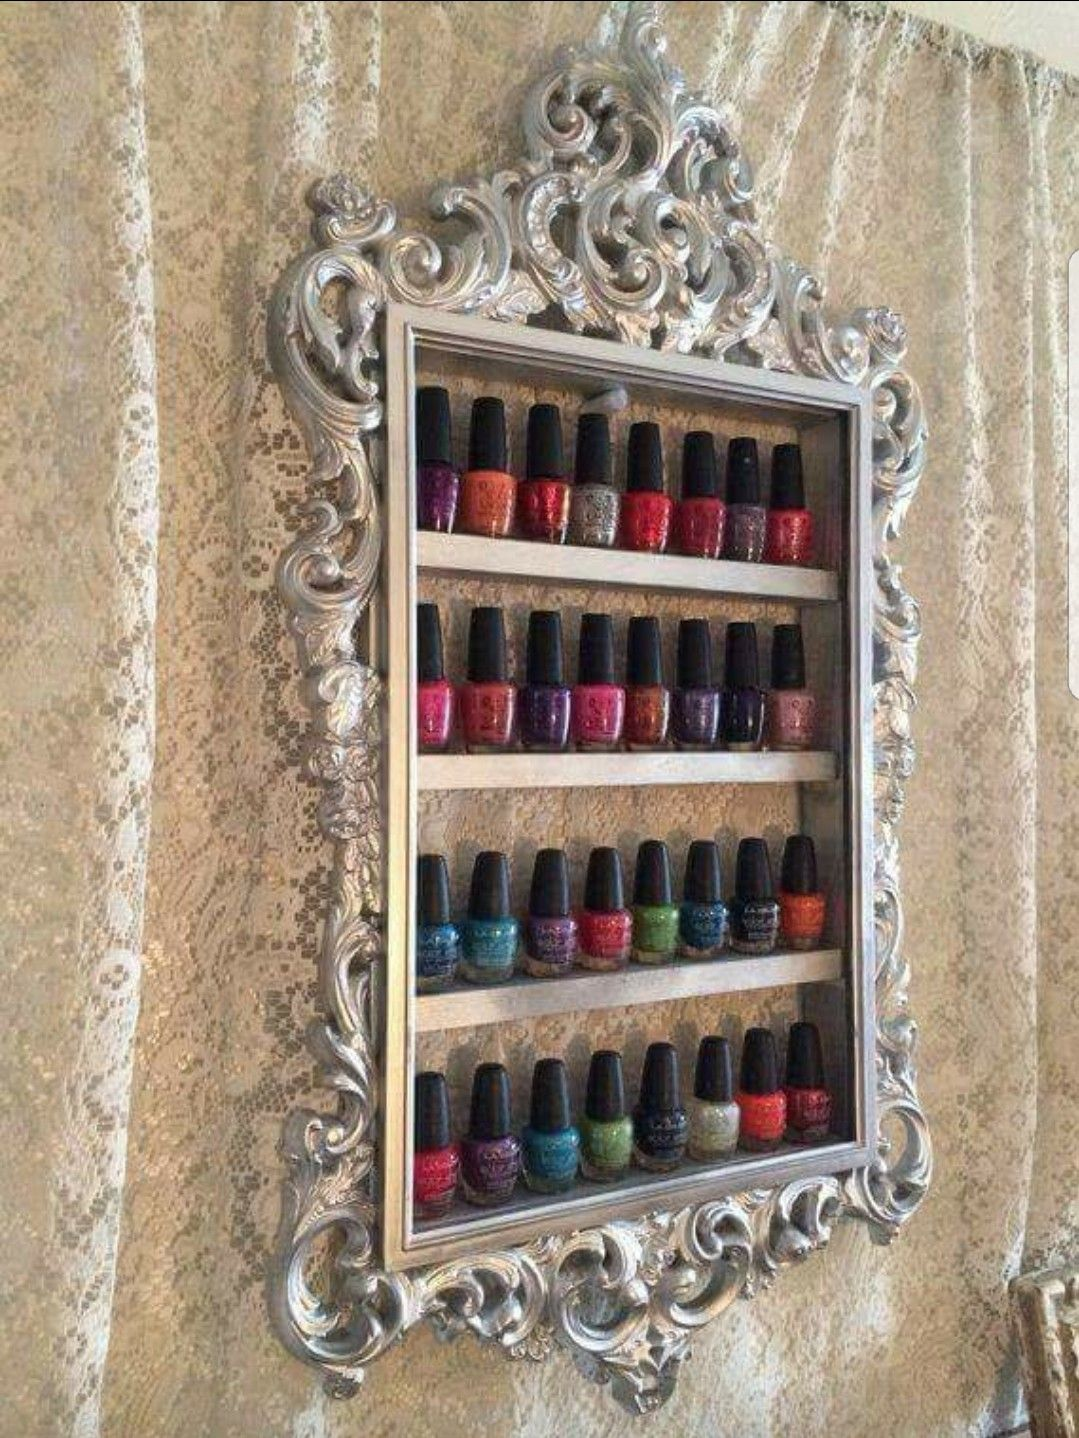 Pin by LindaDauw on Nagelkunst | Pinterest | Room closet and Room